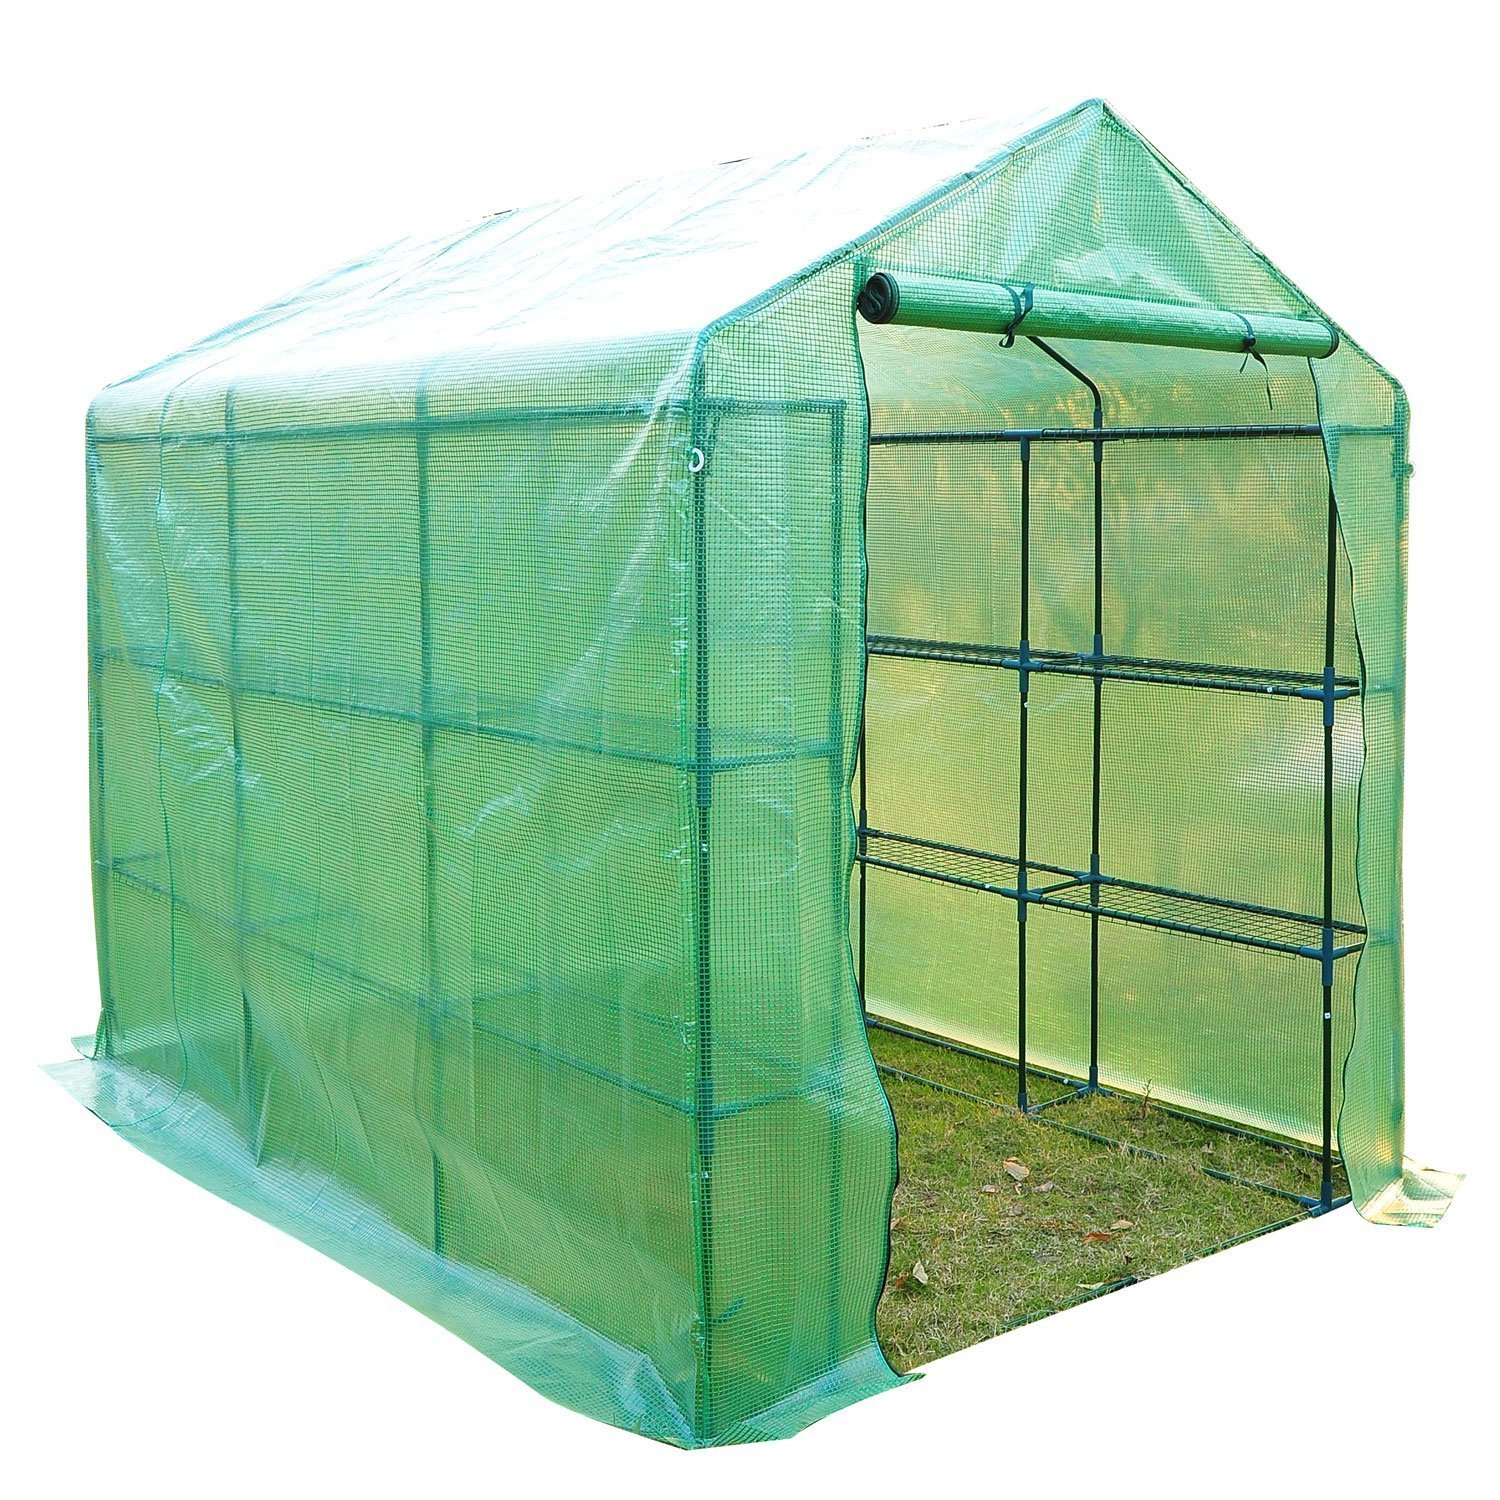 Outsunny 8' x 6' x 7' Outdoor Portable Walk-in Greenhouse by Outsunny (Image #1)